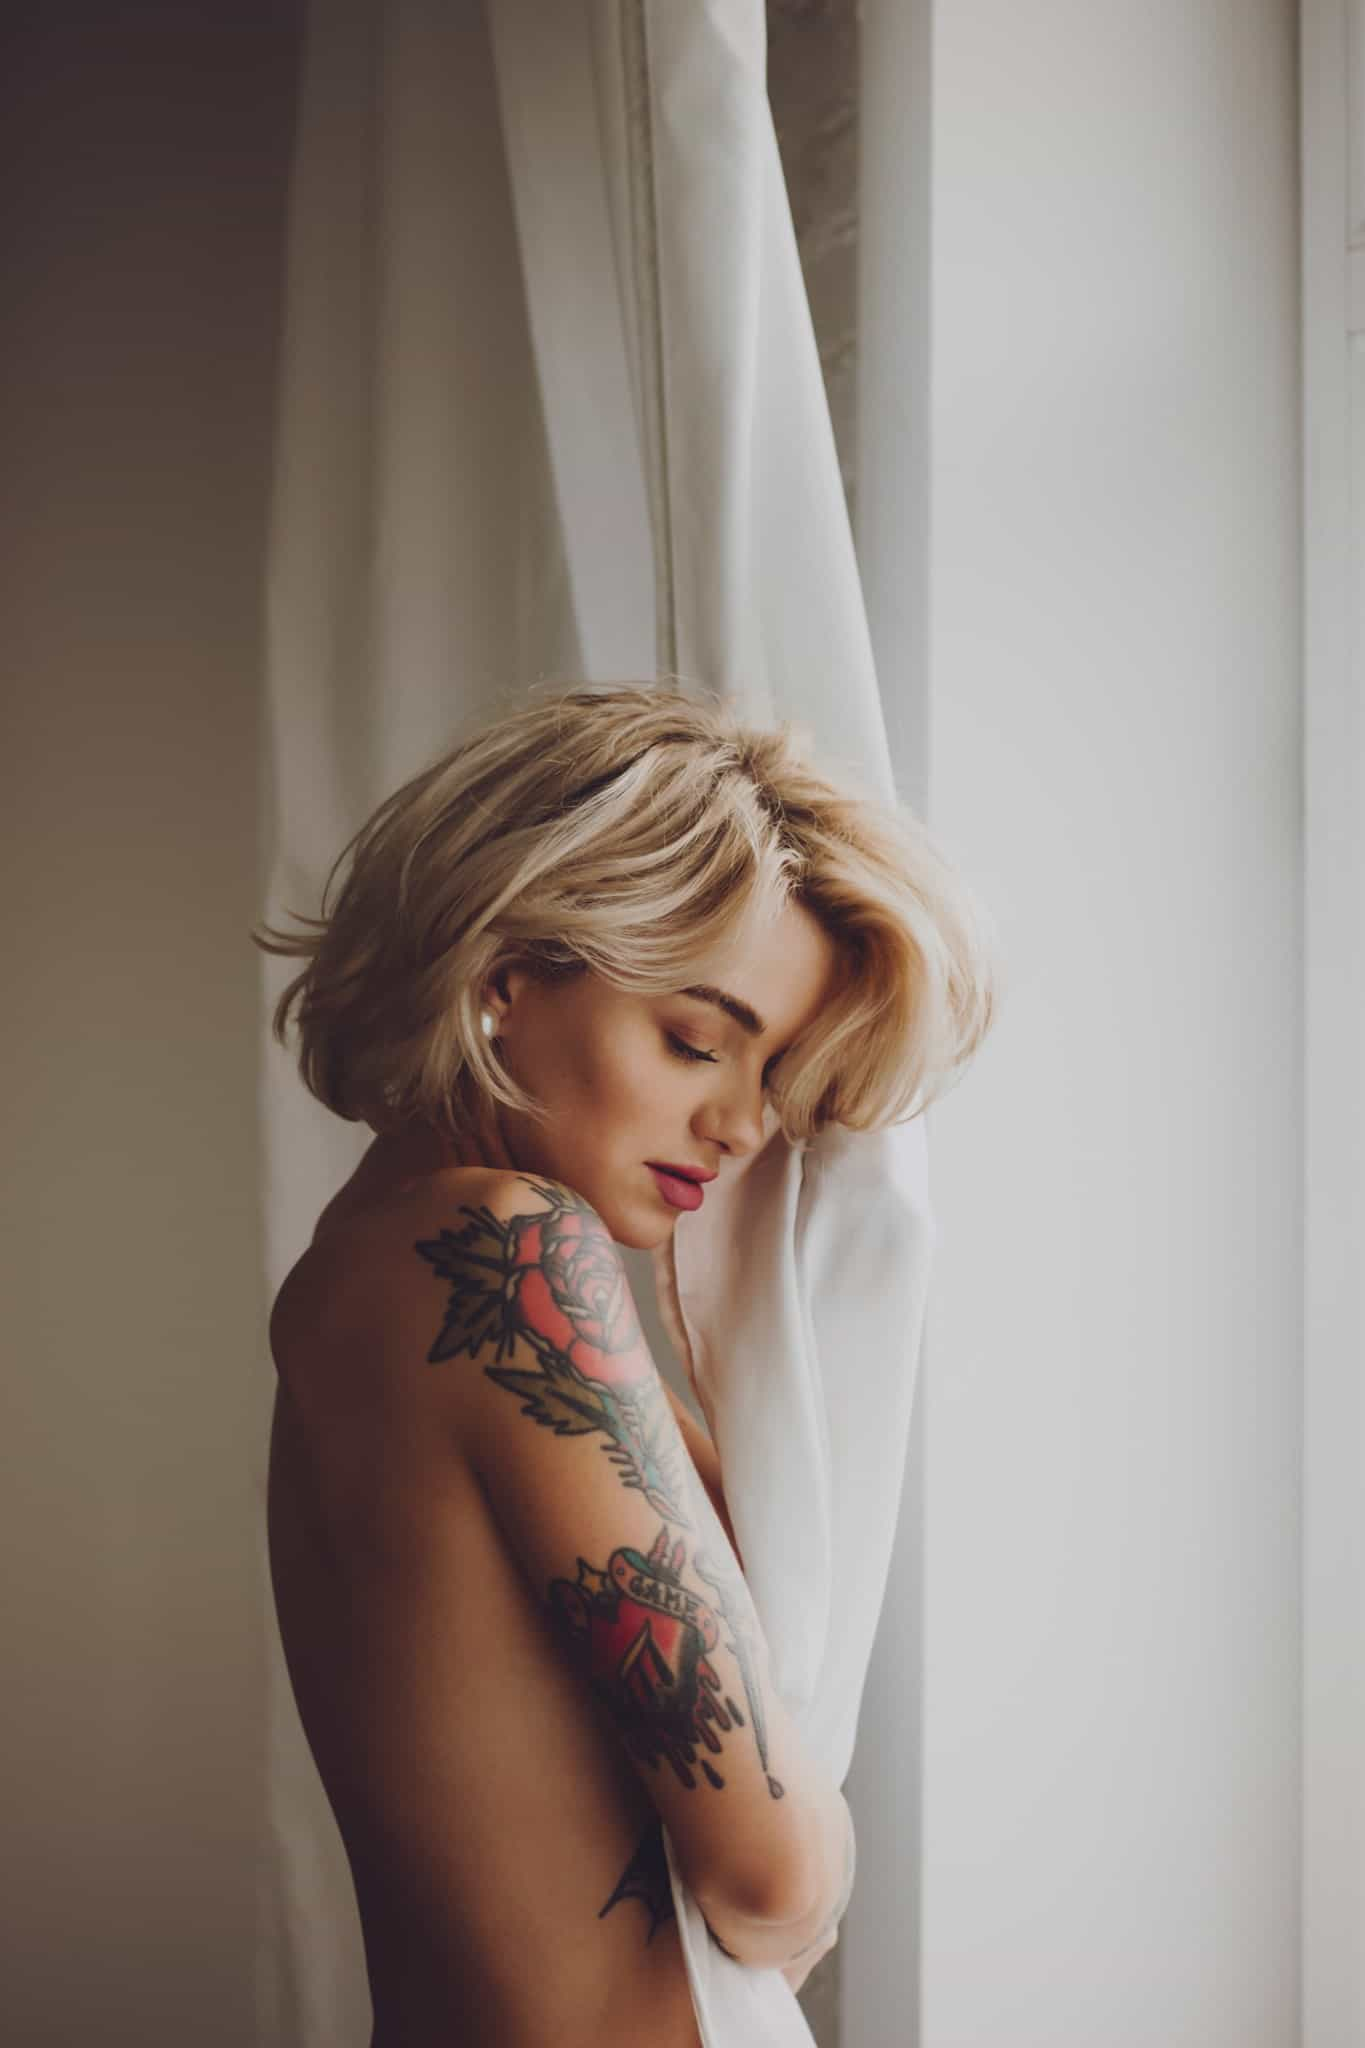 The Best Boudoir Images From Our Community Of 2019